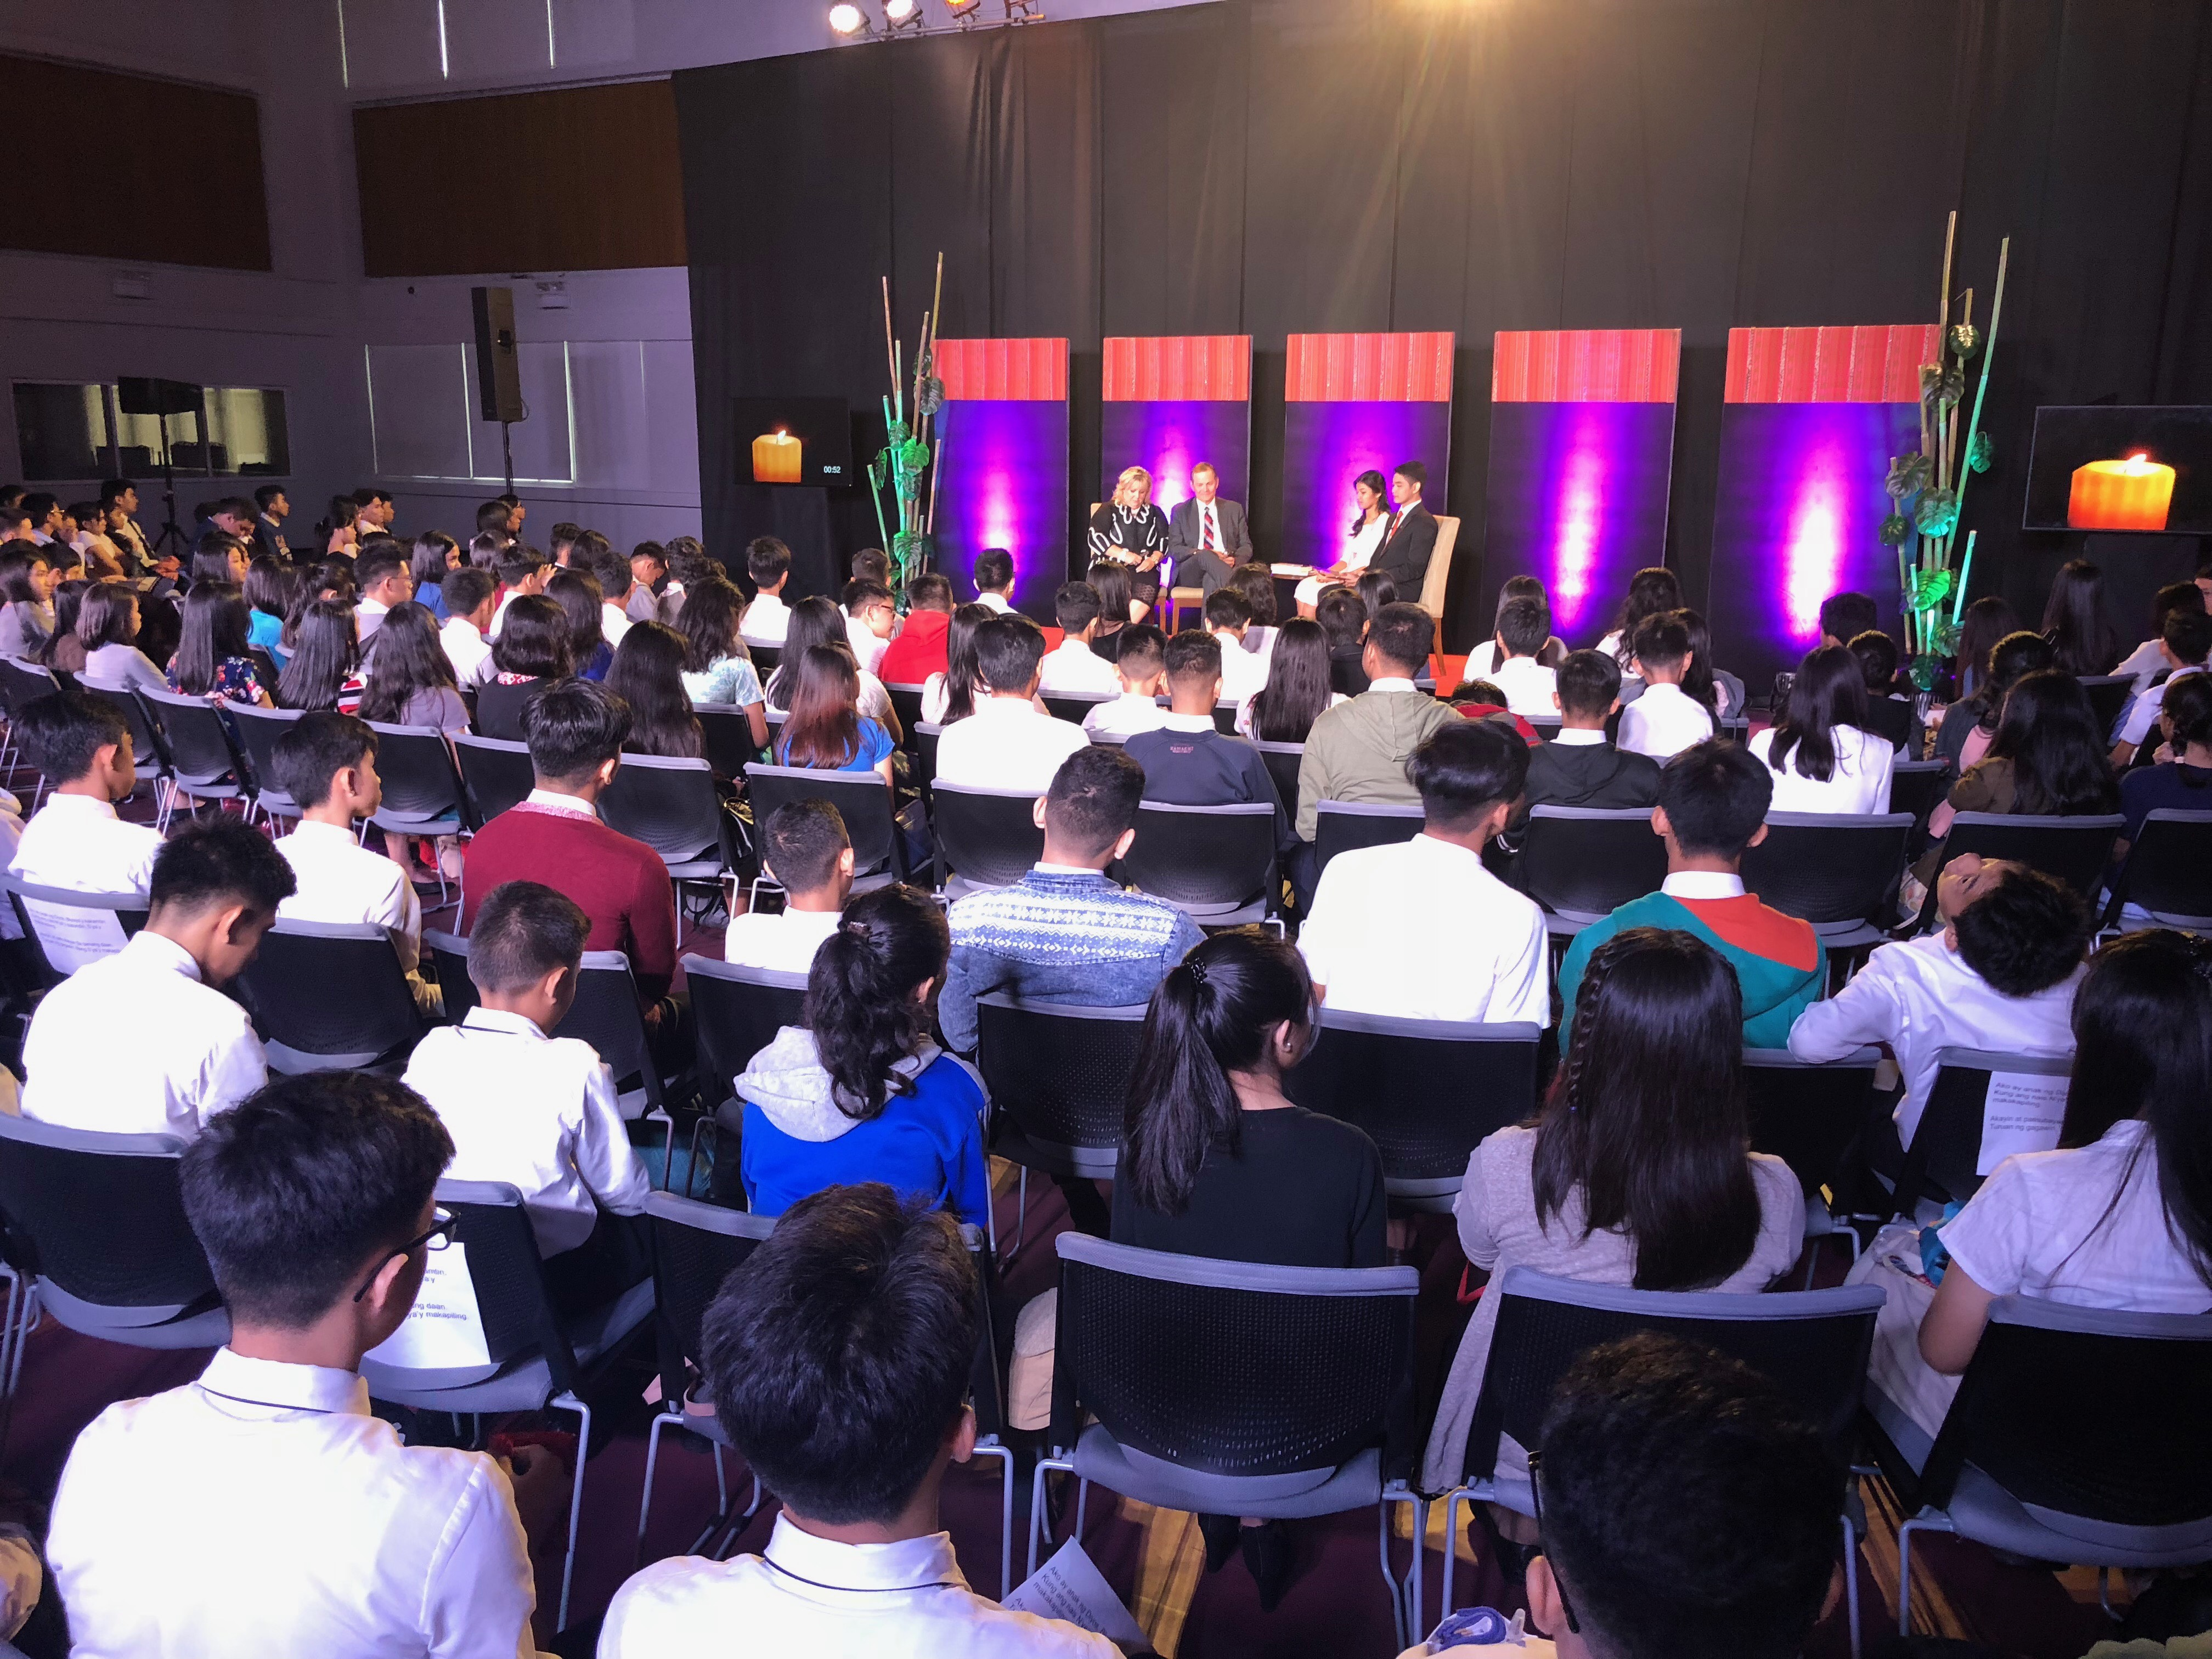 Elder Gary E. Stevenson and his wife, Sister Lesa Stevenson, participate in a regional Face to Face event with youth in Asia on Aug. 11, 2018.